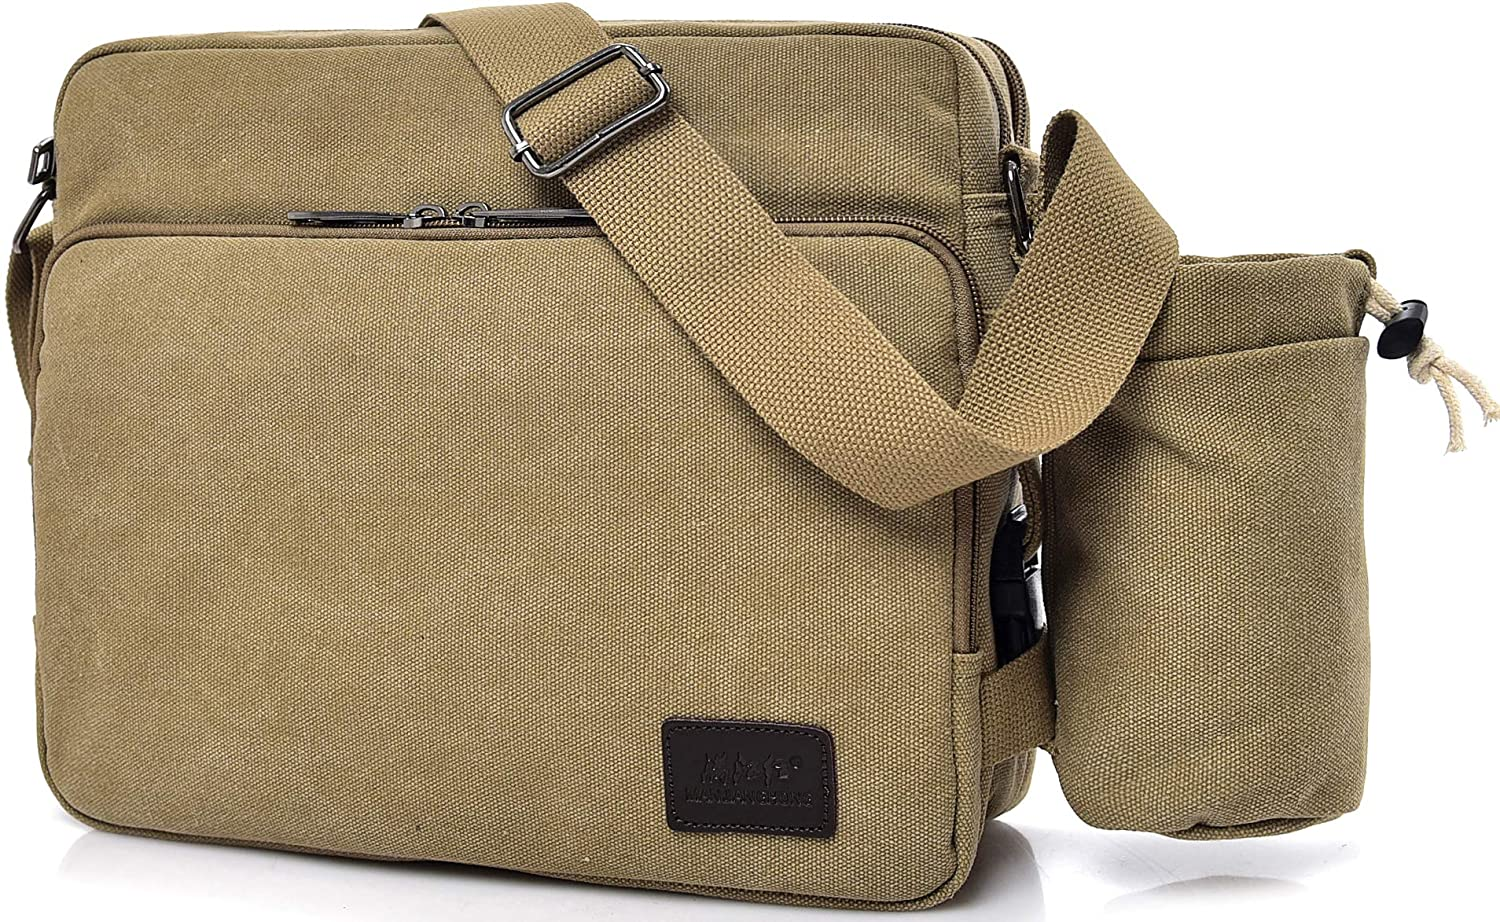 Scioltoo Laptop Messenger Bag Retro Canvas Waterproof Hiking Shoulder Bag